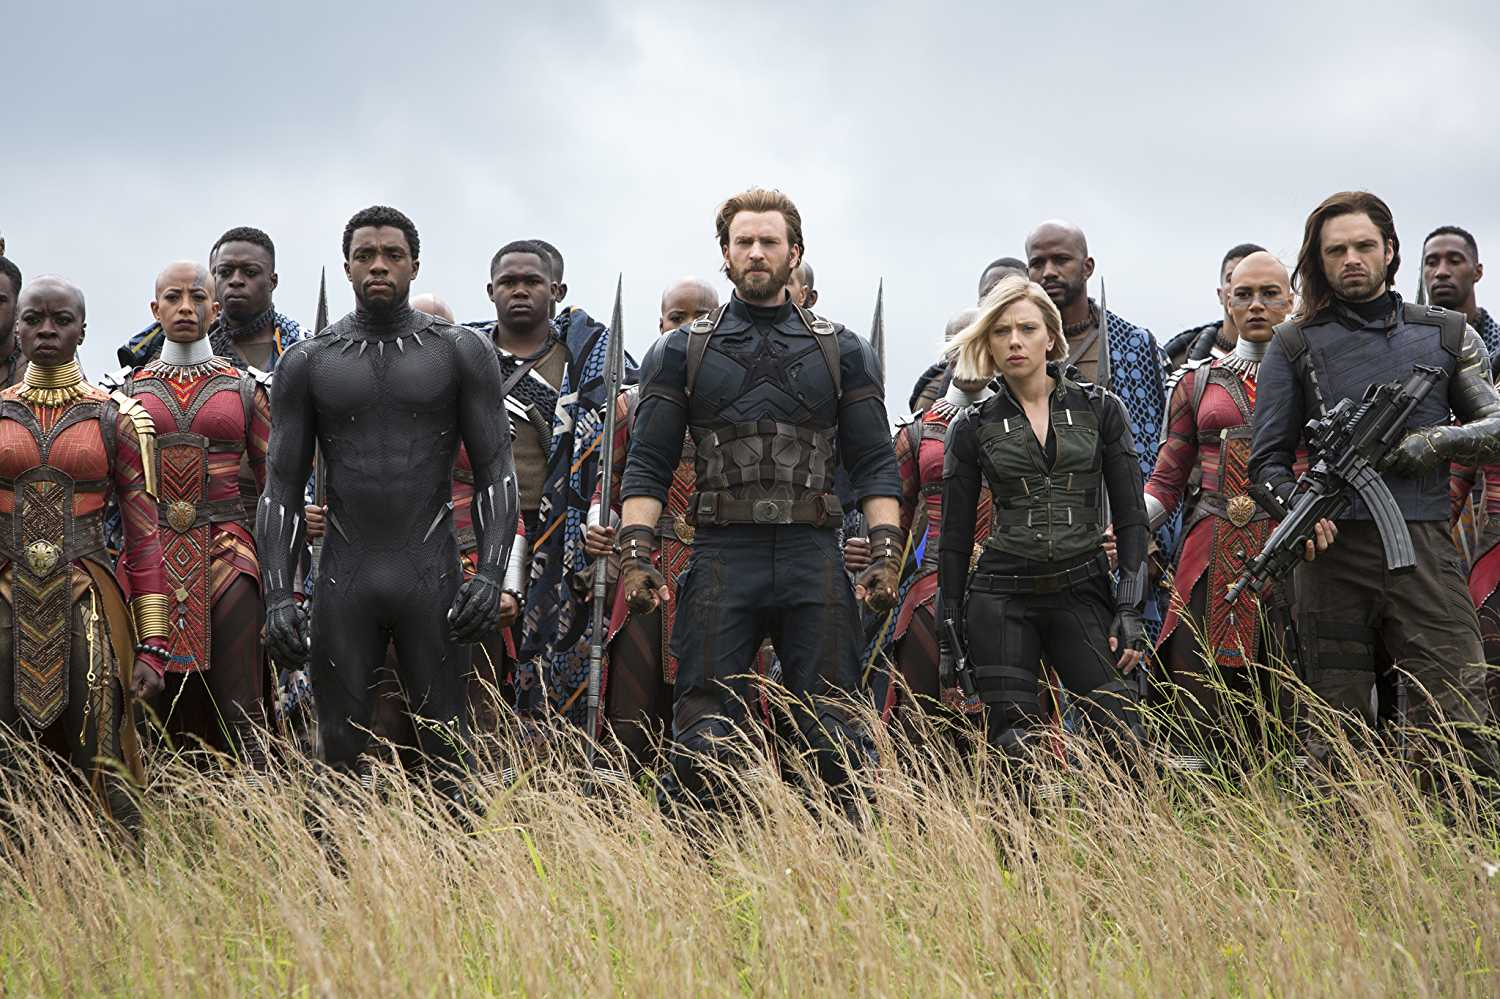 'Infinity War' has already grossed $2 billion worldwide (Source: IMDb)